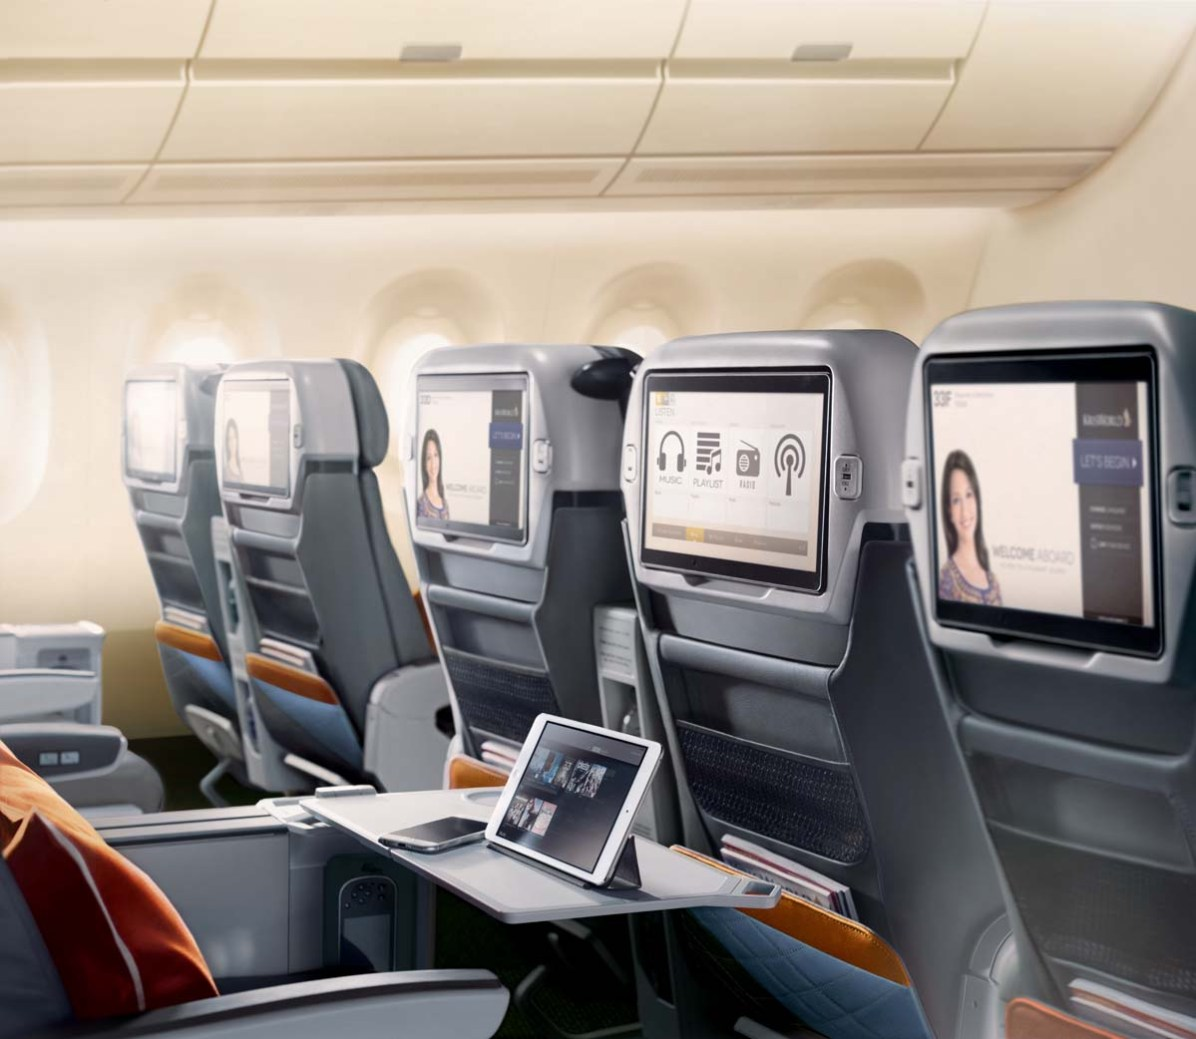 bildschirm-premium-eonomy-class-singapore-airlines